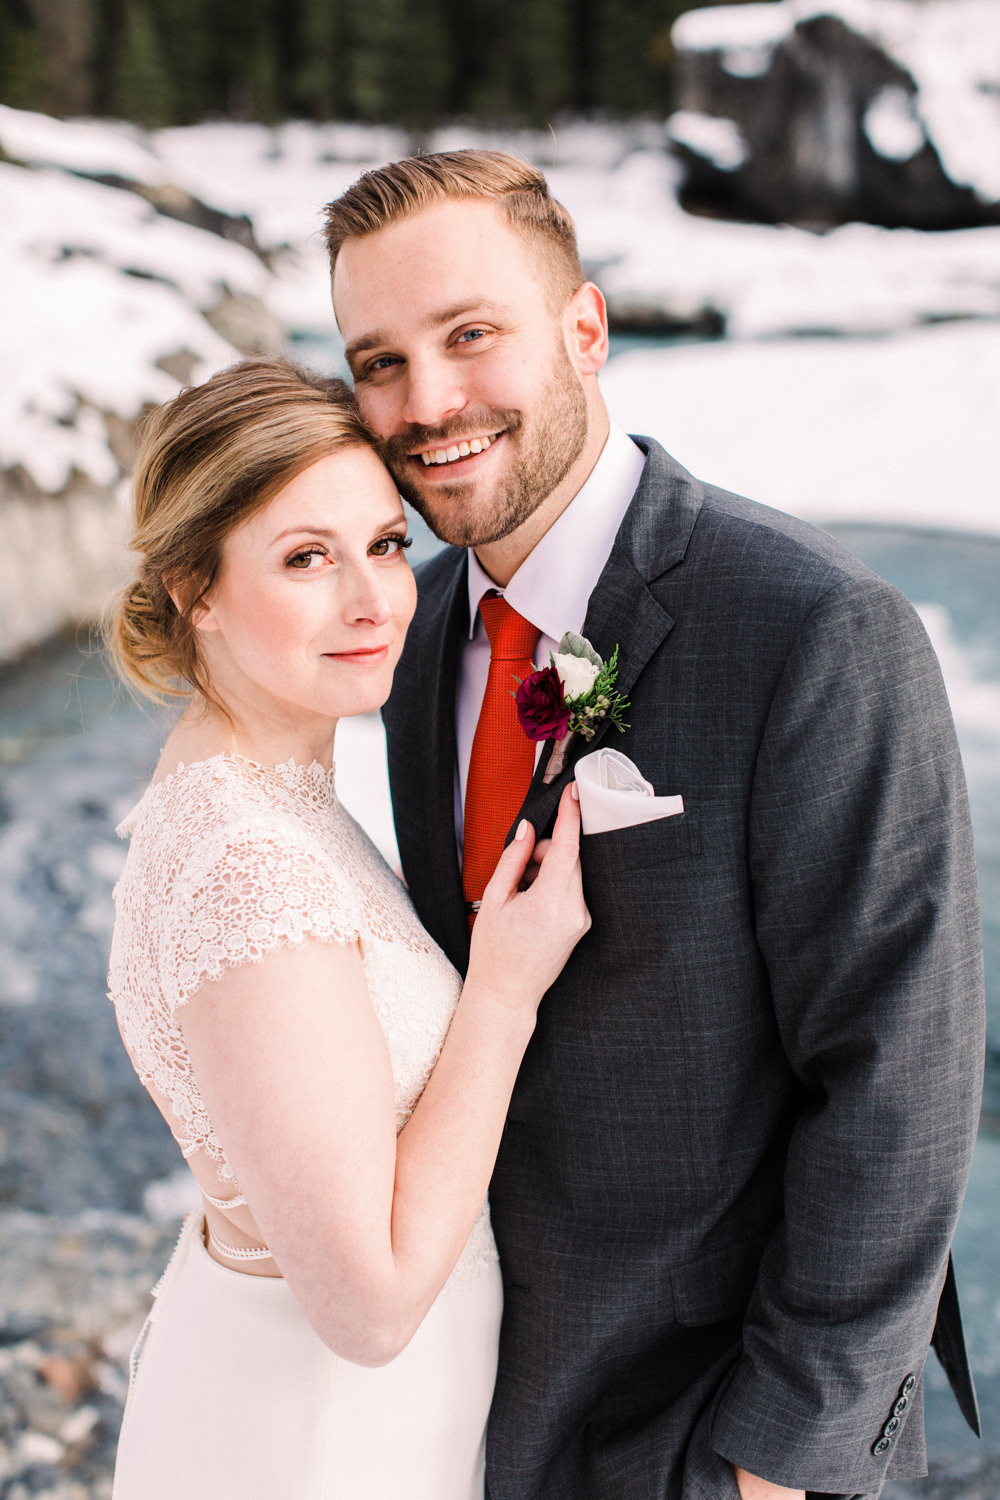 Matt-and-Jennas-Emerald-Lake-winter-wedding-27.jpg